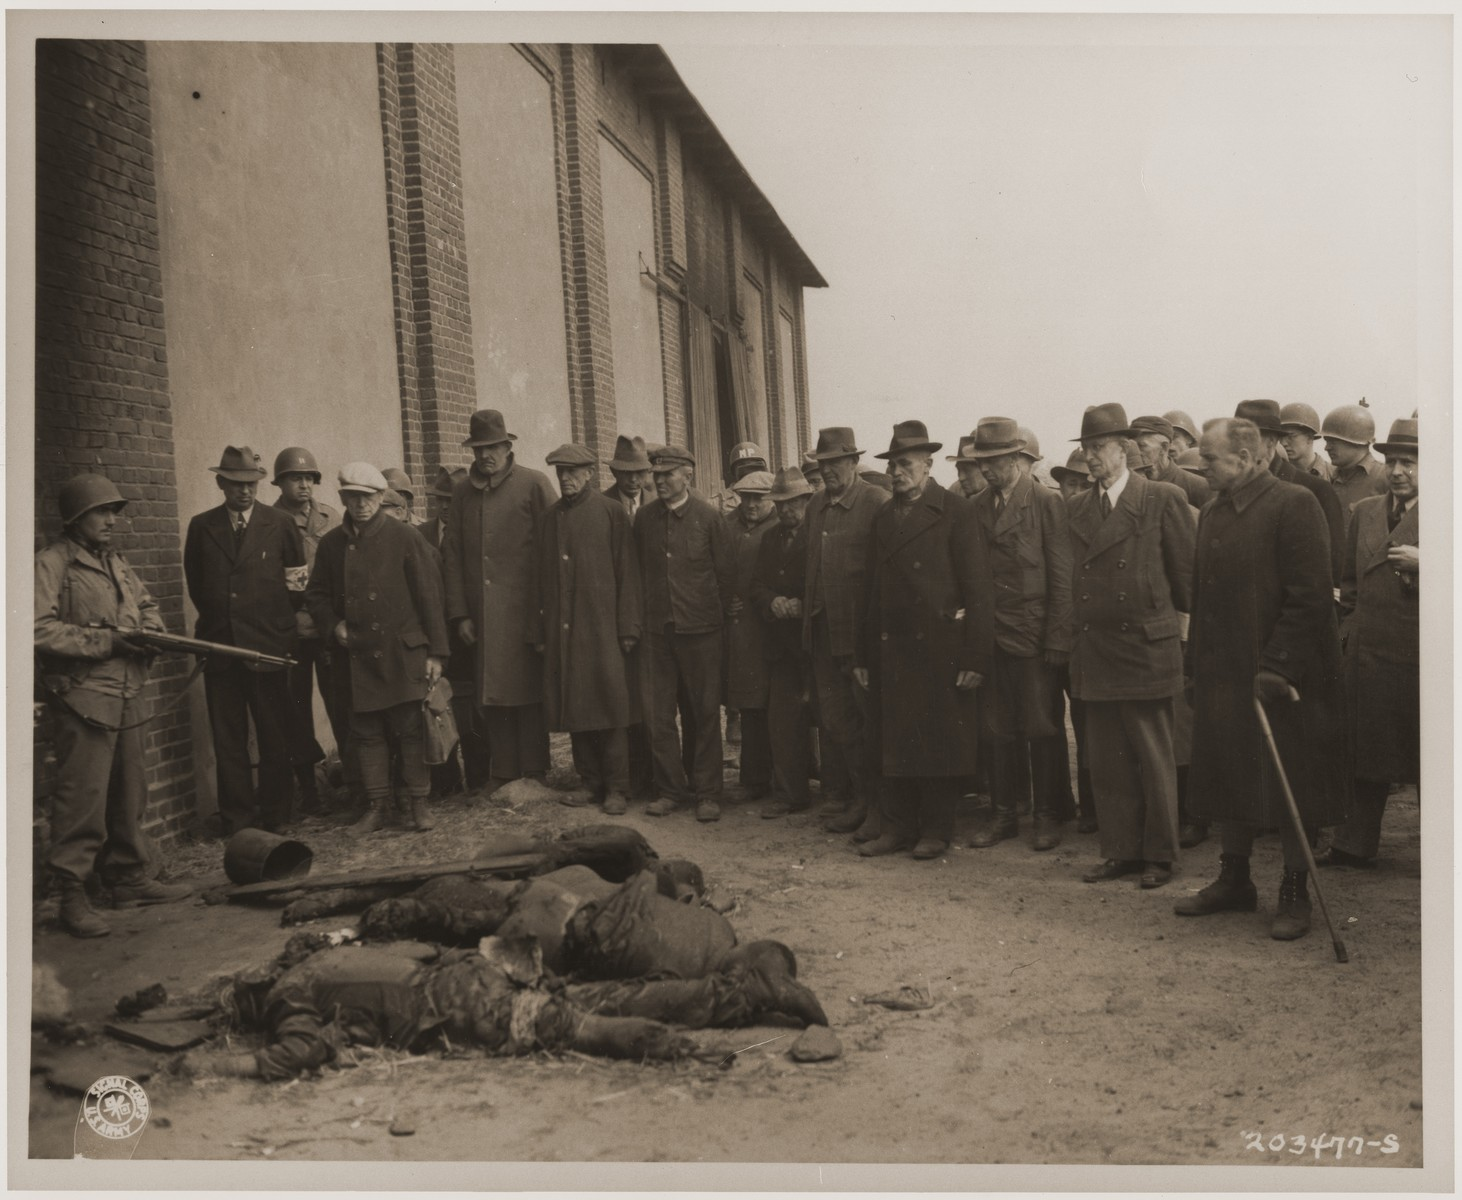 Under the supervision of American soldiers, mayors and townspeople from Gardelegen and other surrounding towns are forced to view the charred corpses of prisoners shot while trying to escape a burning barn.